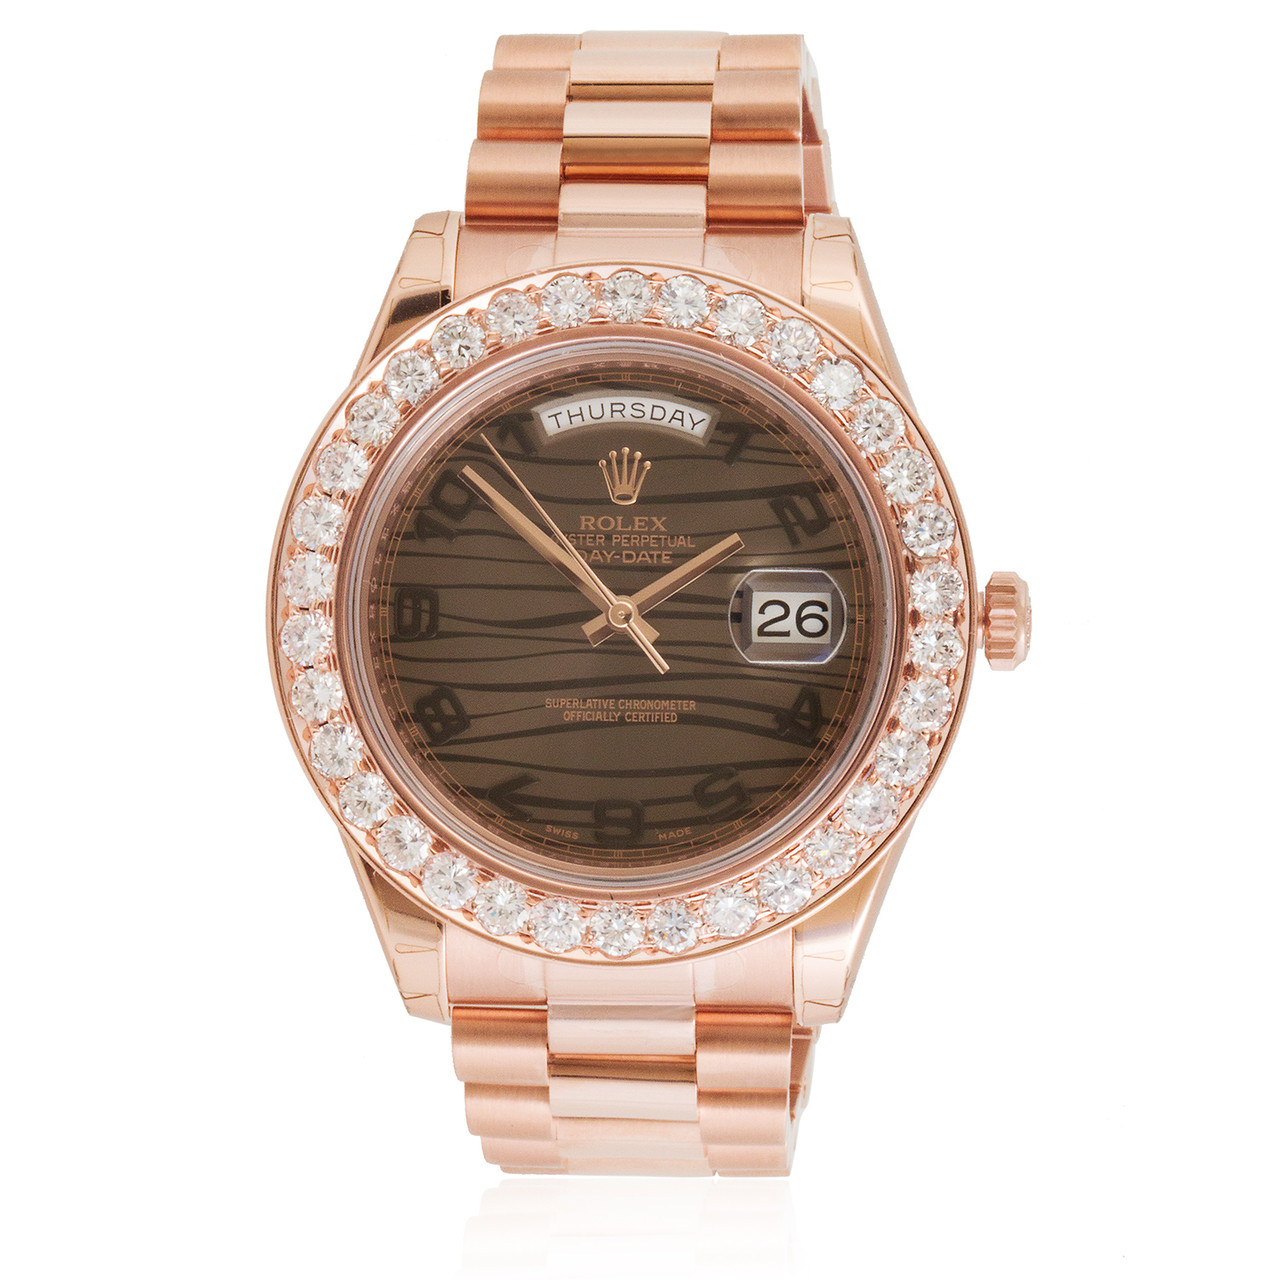 Rolex Day Date Ii 18k Rose Gold President 475ct Diamond Automatic Mens Watch